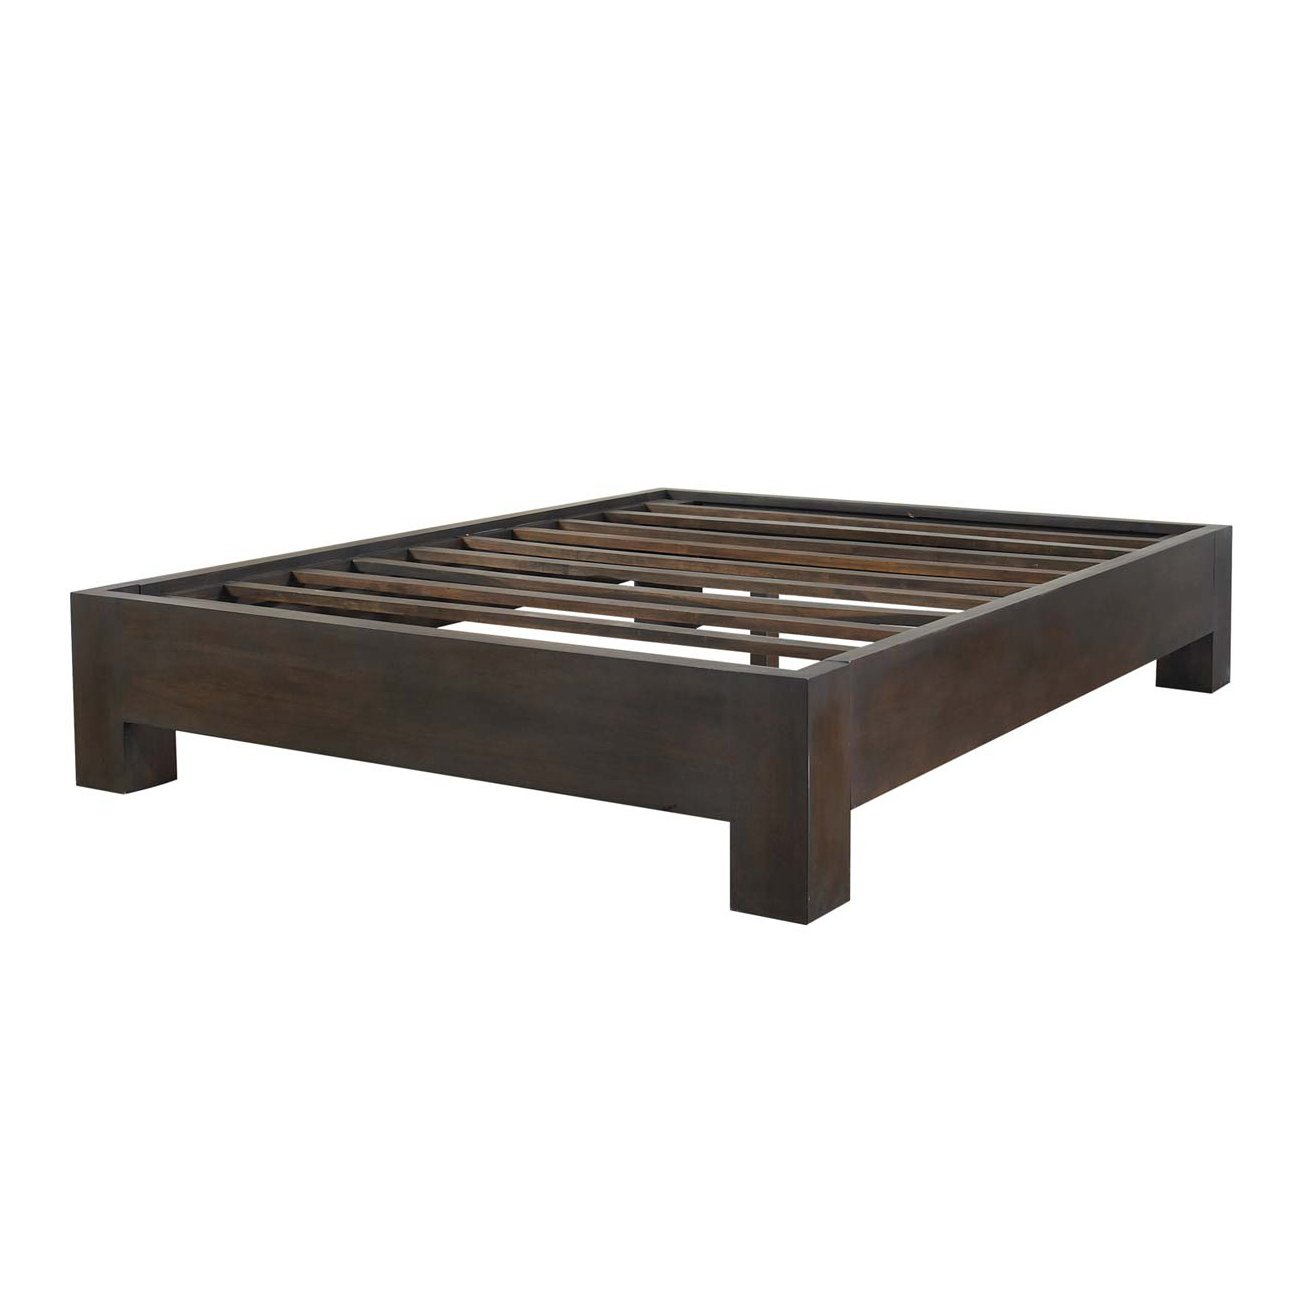 Image of: ideas platform bed frame simple